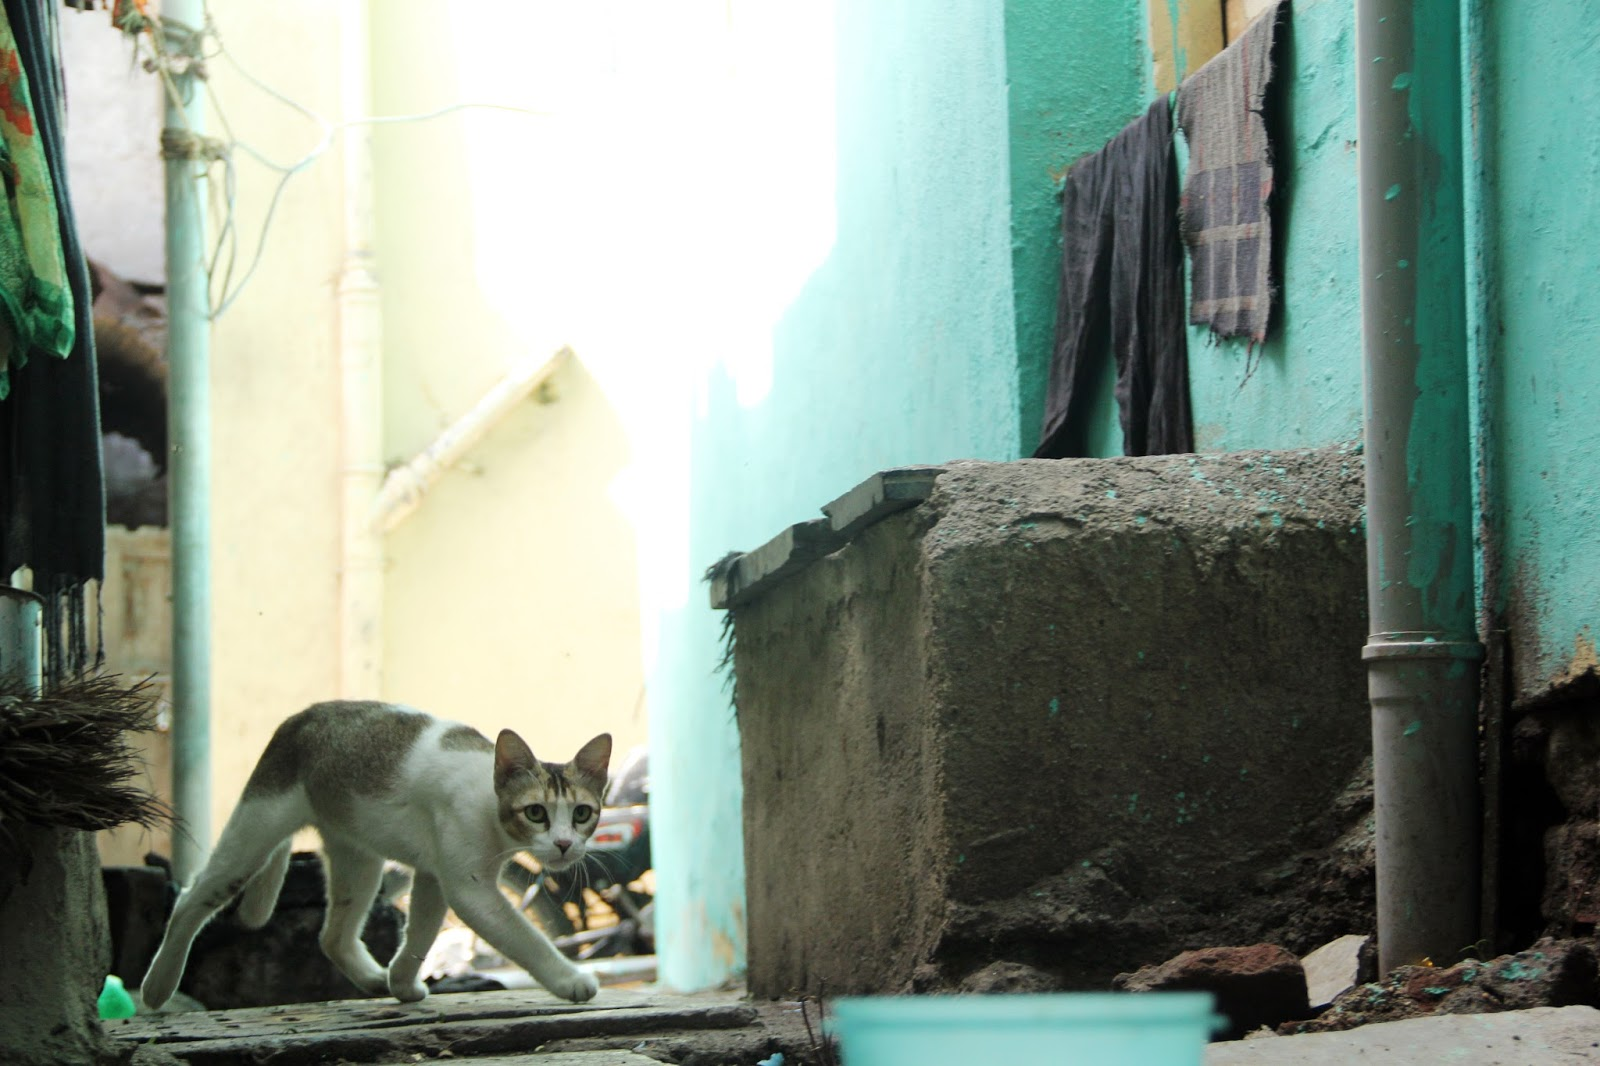 Story of Two Hungry Cats | Ajitsingh Chauhan Photography Blog